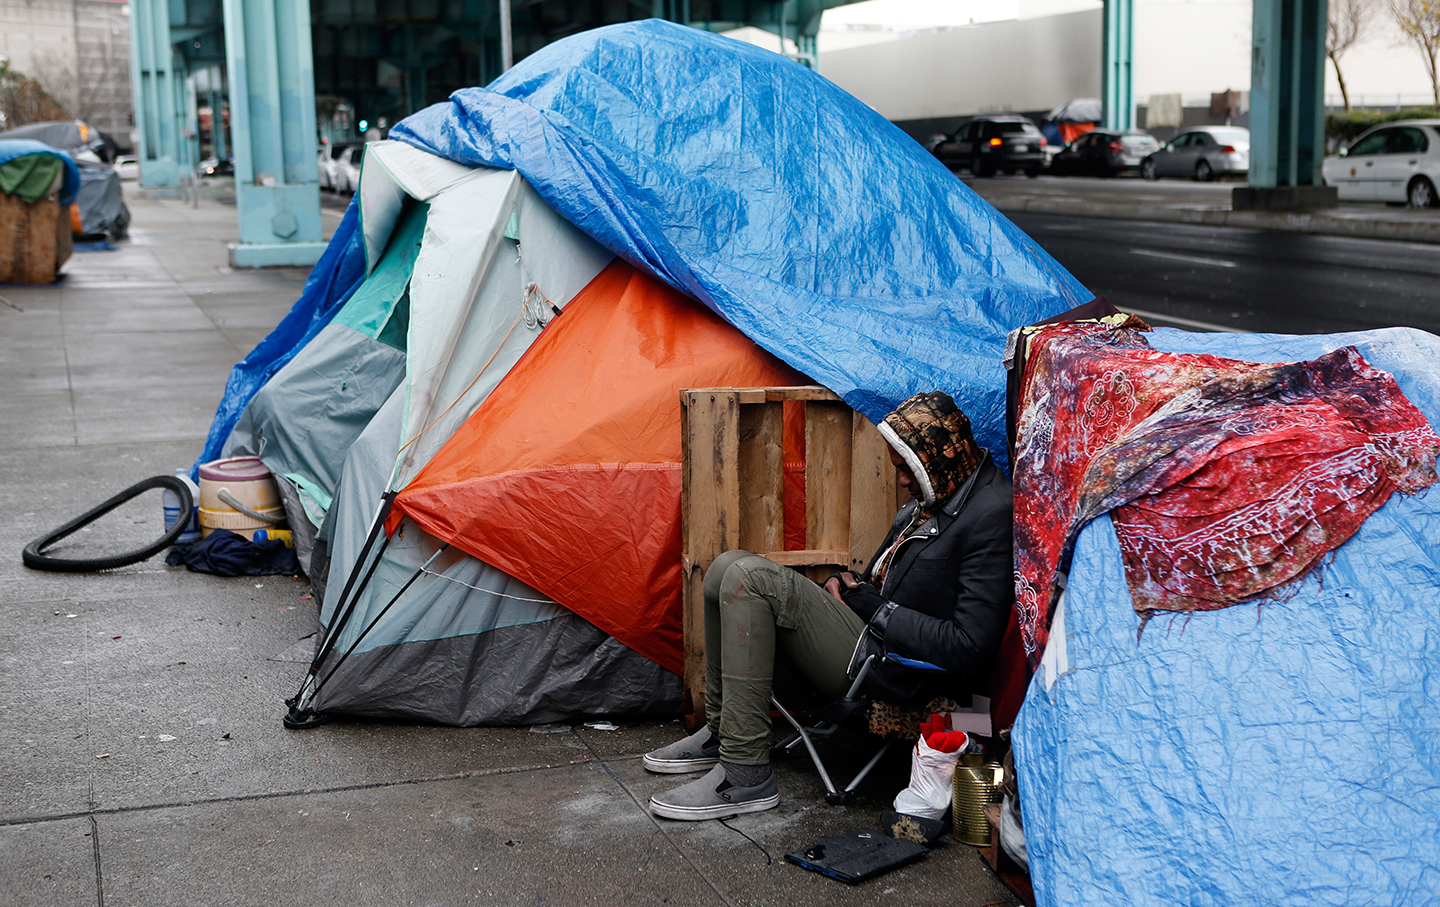 Homelessness in Silicon Valley